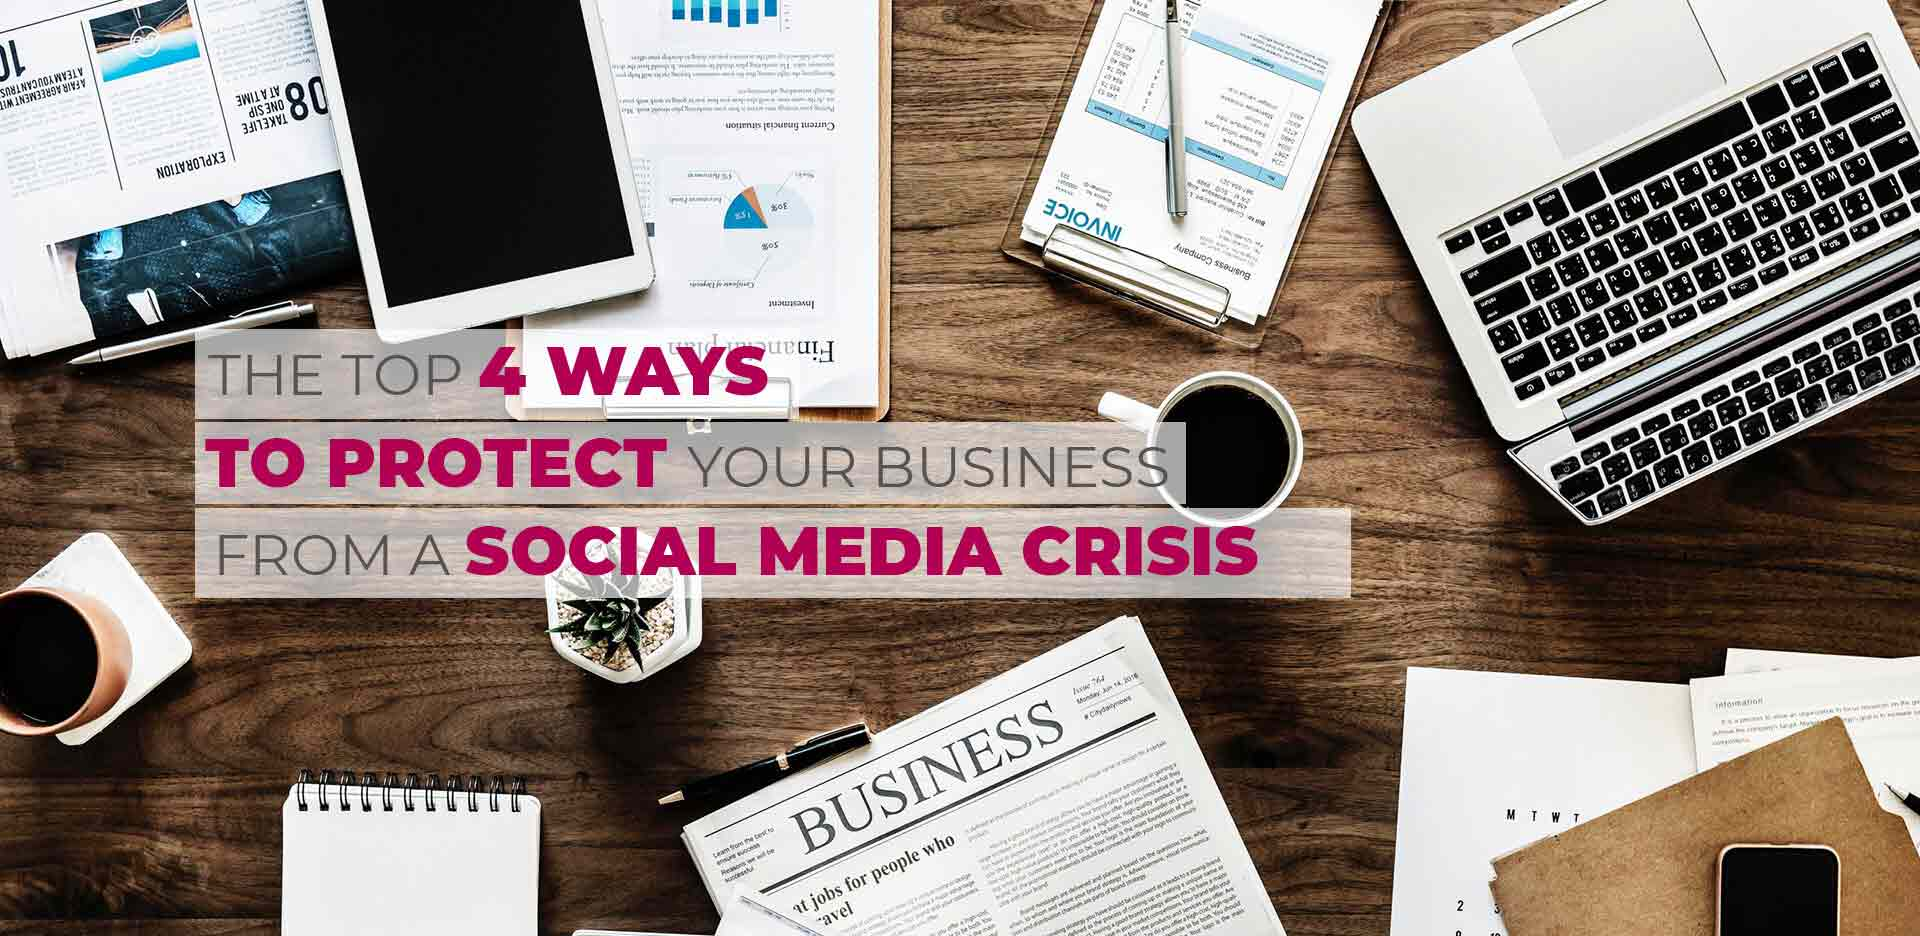 The top 4 ways to protect your business from a social media crisis